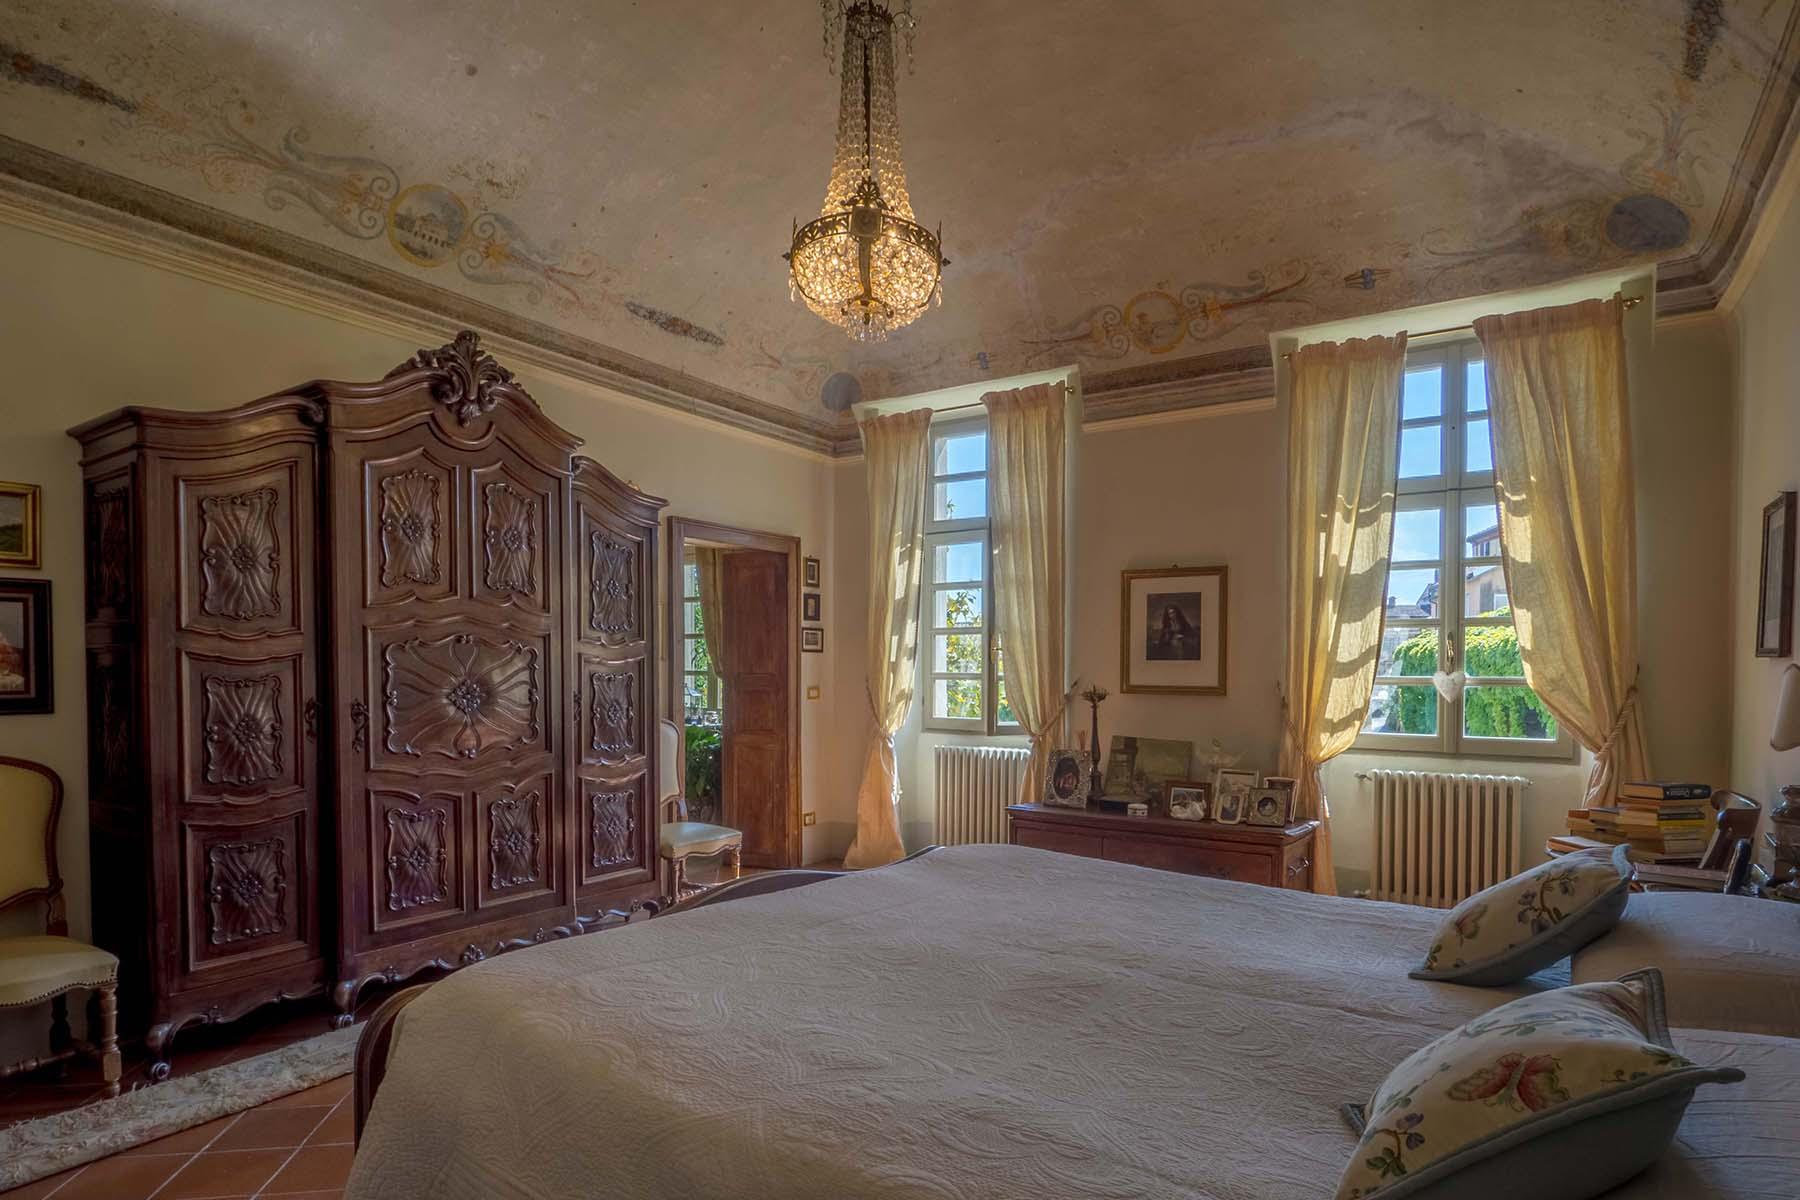 Enchanting historical villa in the heart of the Monferrato region - 11